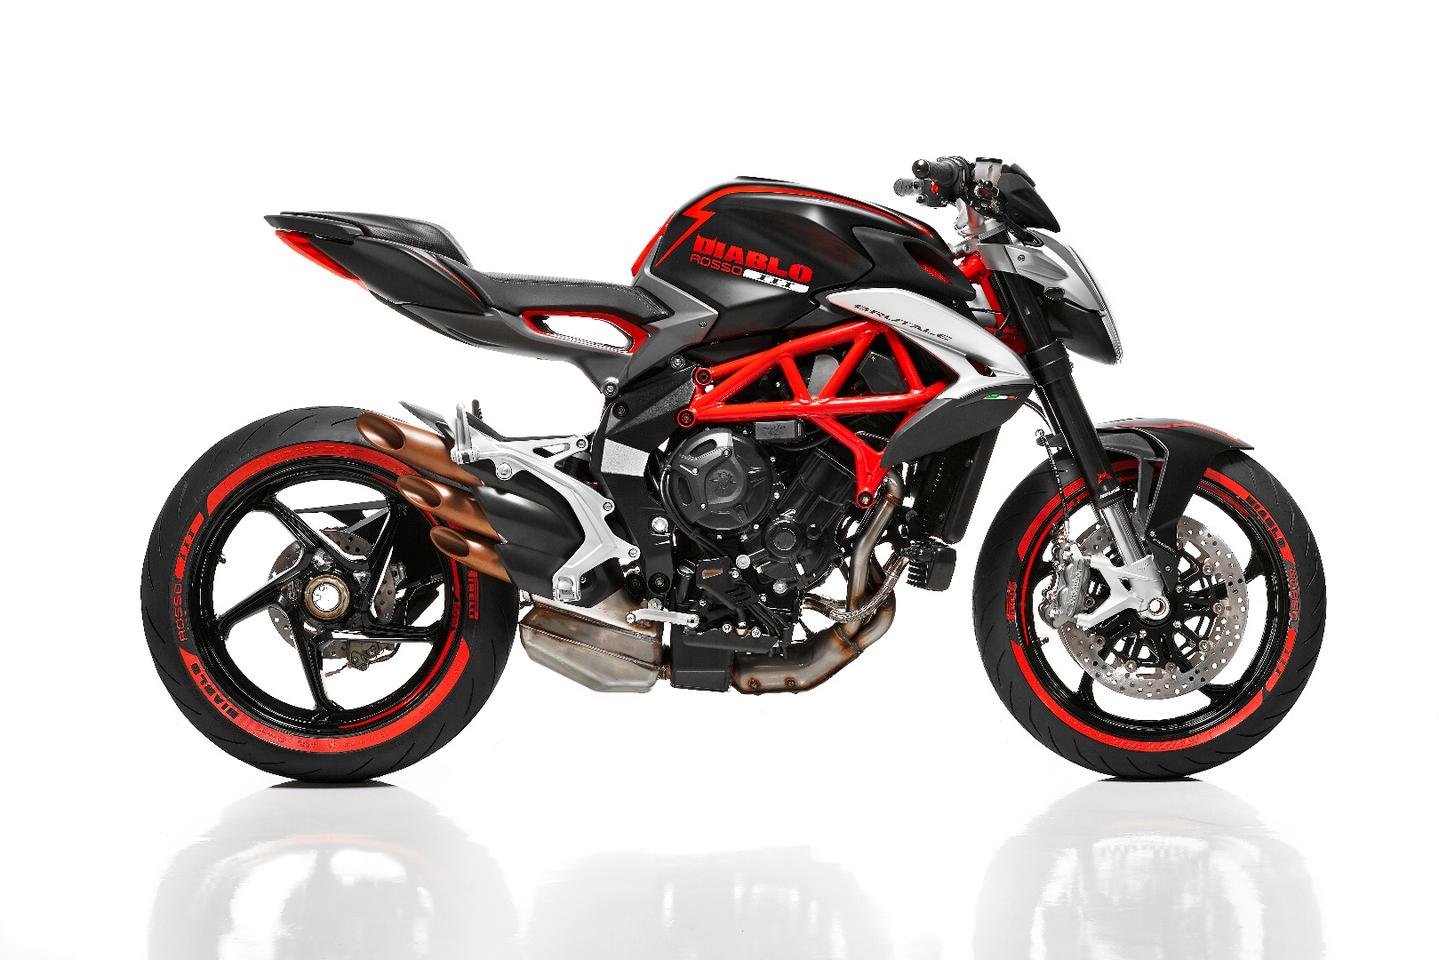 The Diablo Brutale is a special one-off show bike based on the MV Agusta Brutale 800